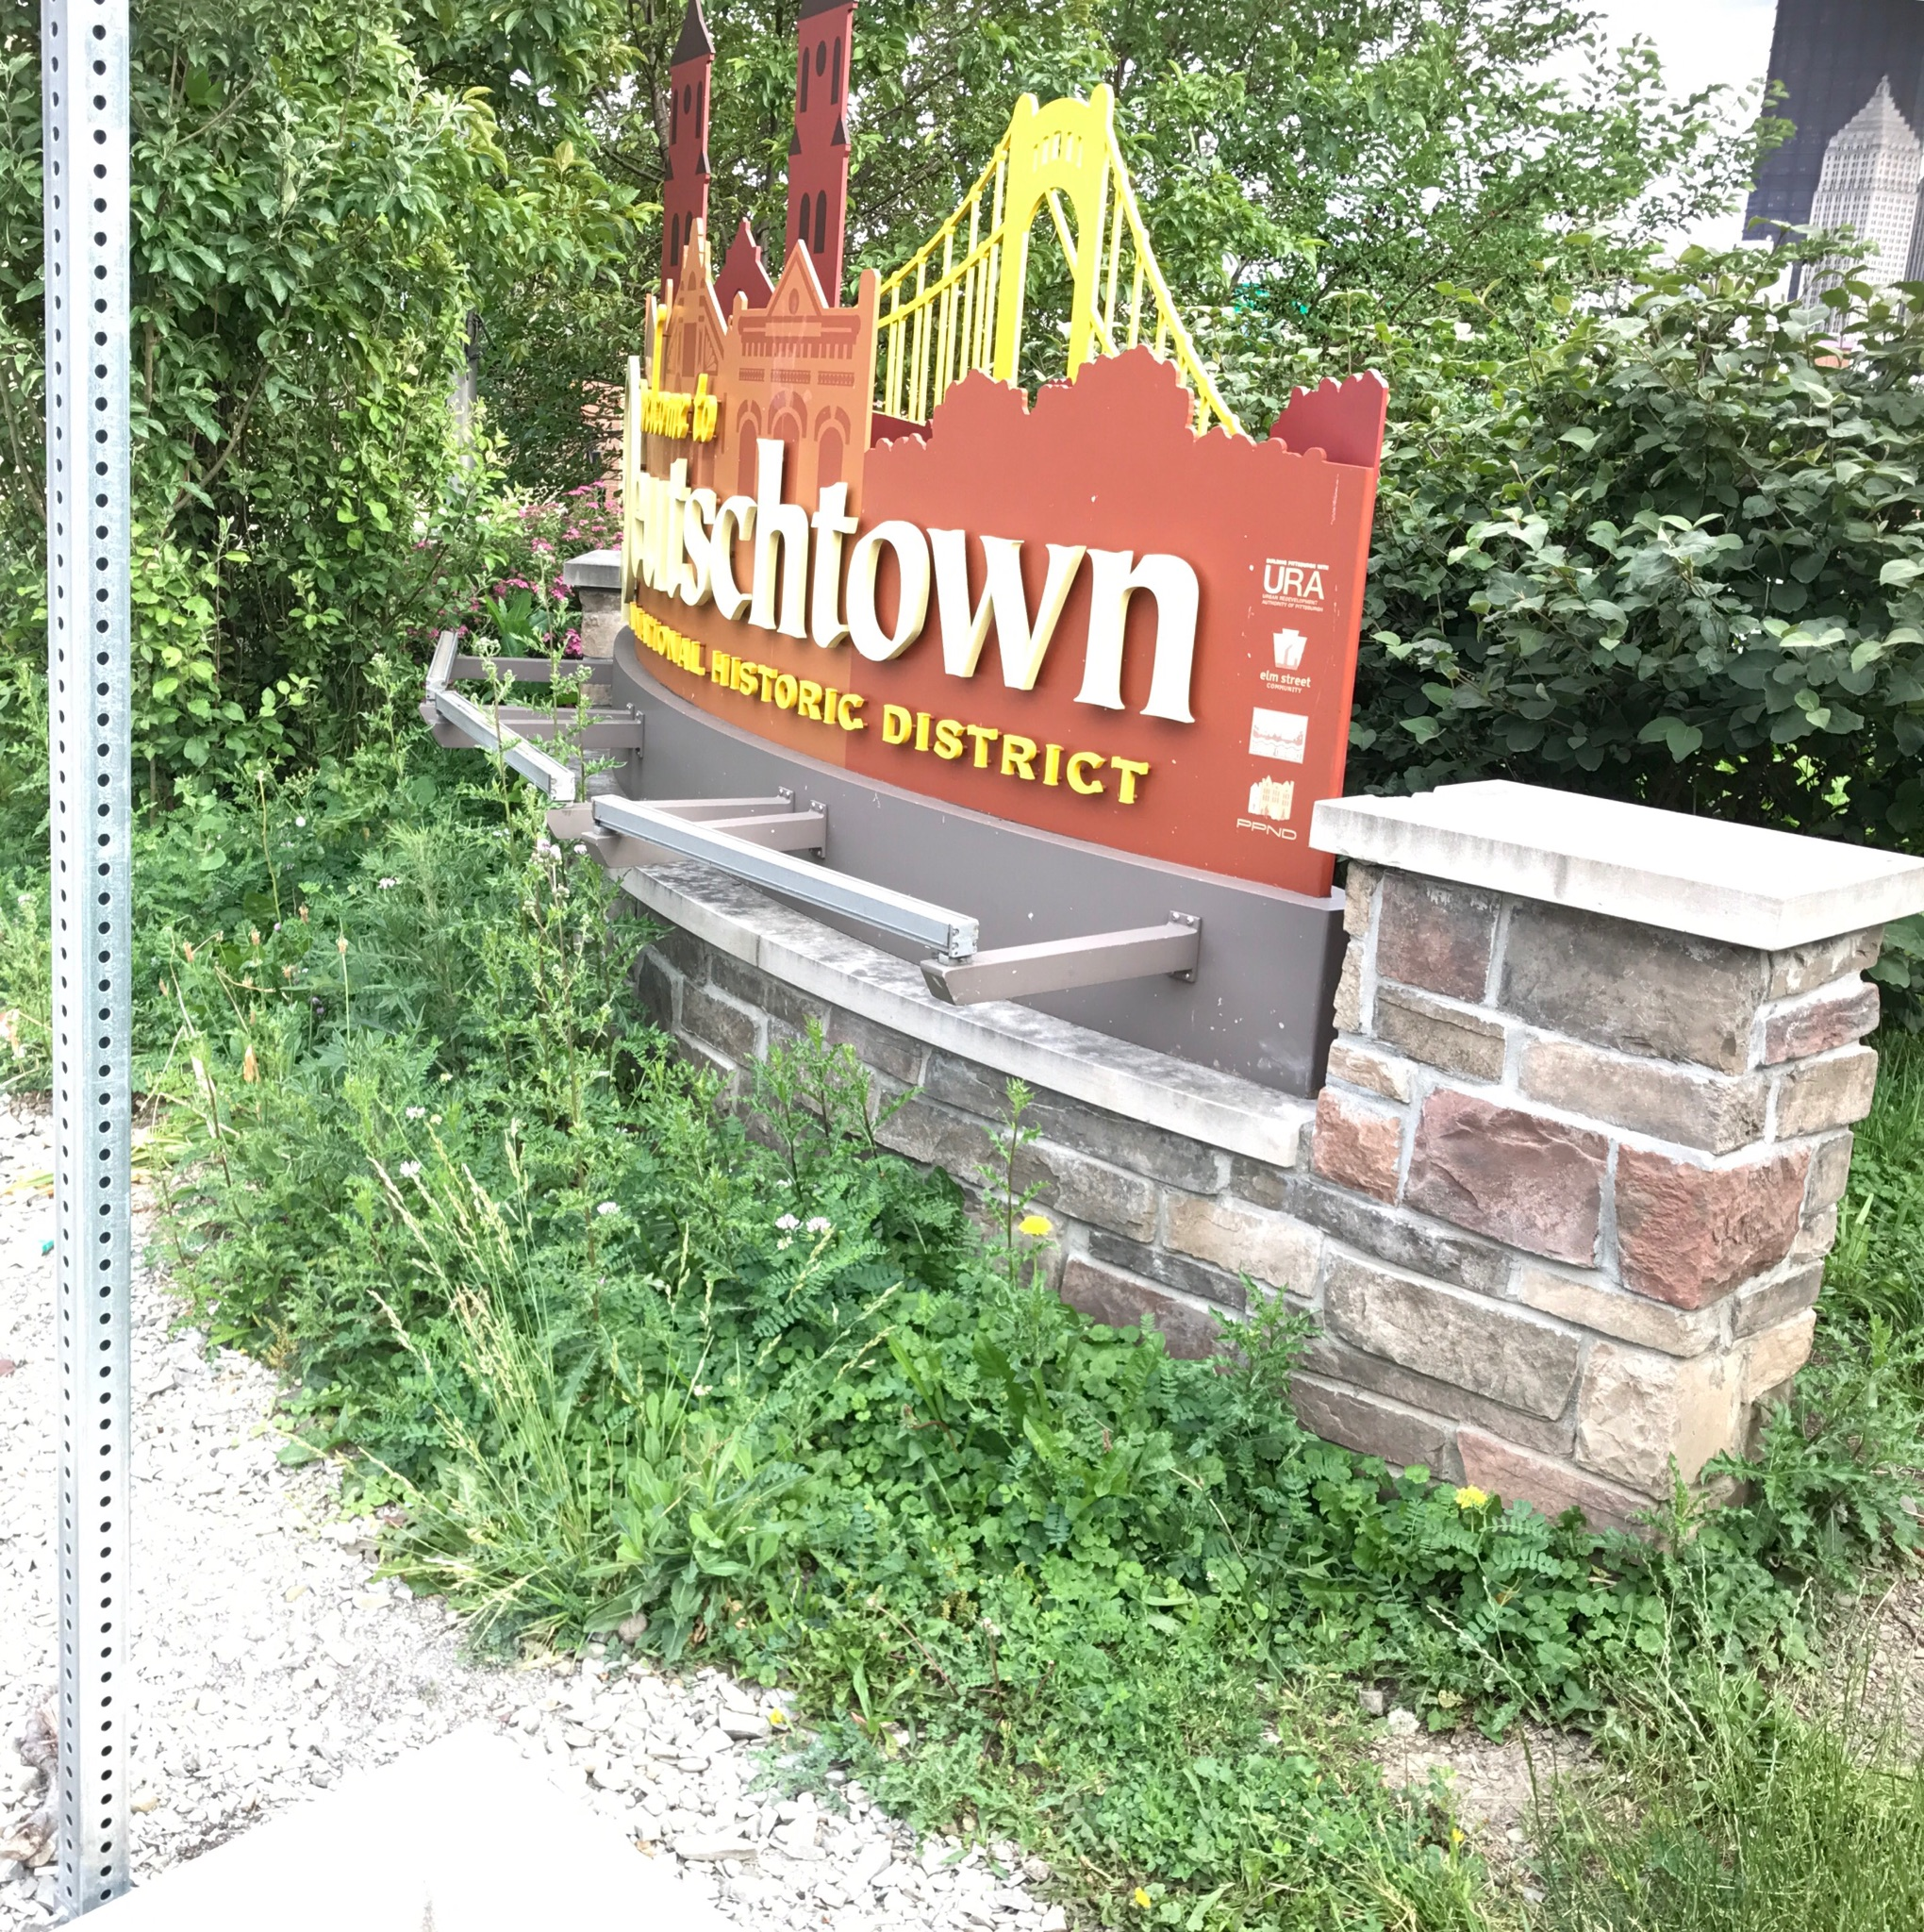 This is the sign at the entrance of Deutschtown, a Pittsburgh neighborhood on the city's North Shore.